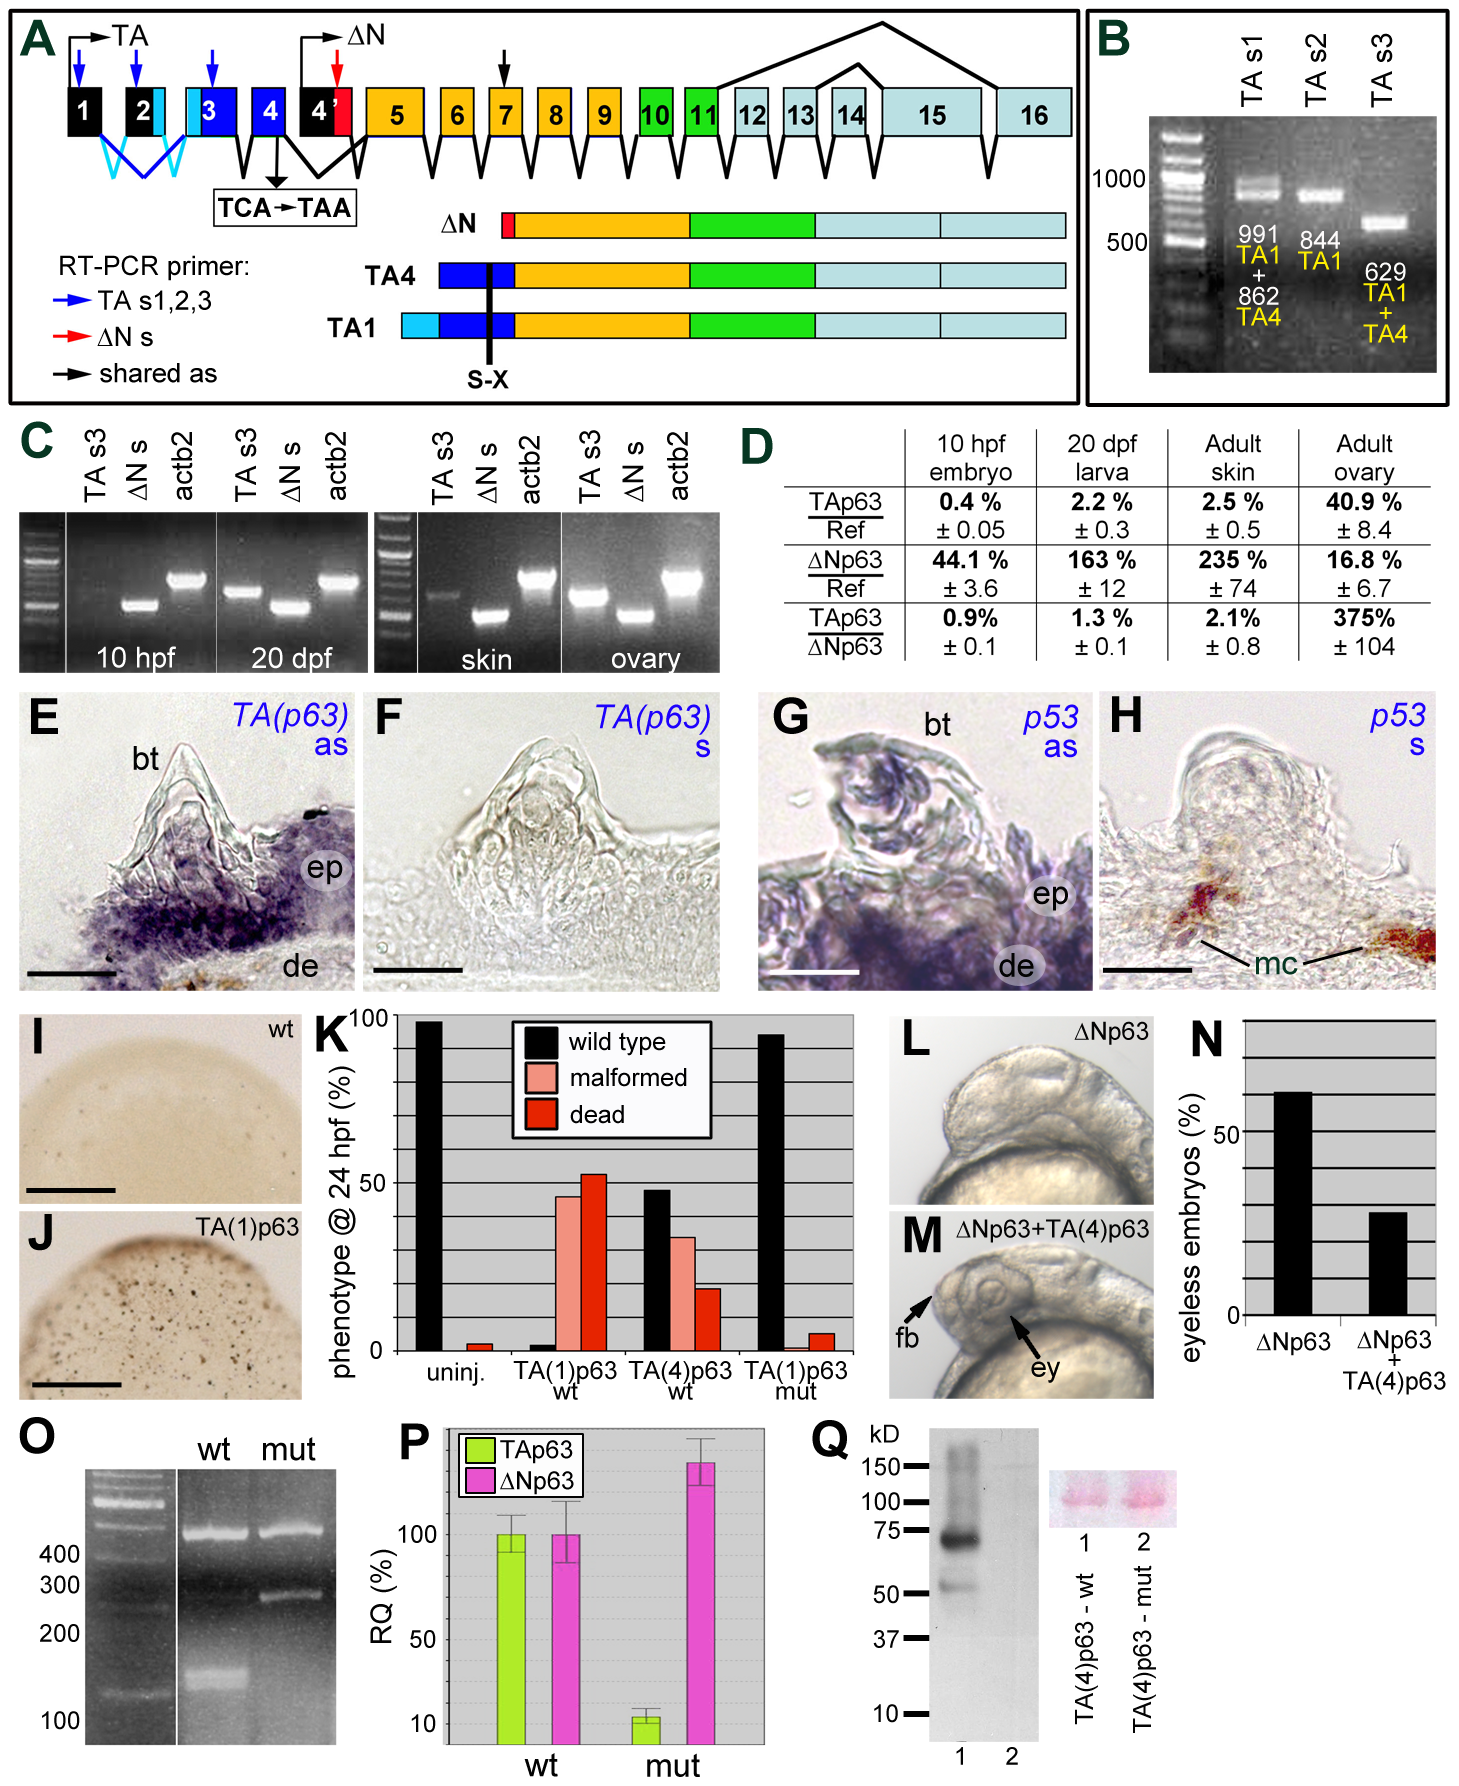 Structure, expression and biological activity of zebrafish TAp63, and molecular features of the mutant hu2525 allele.